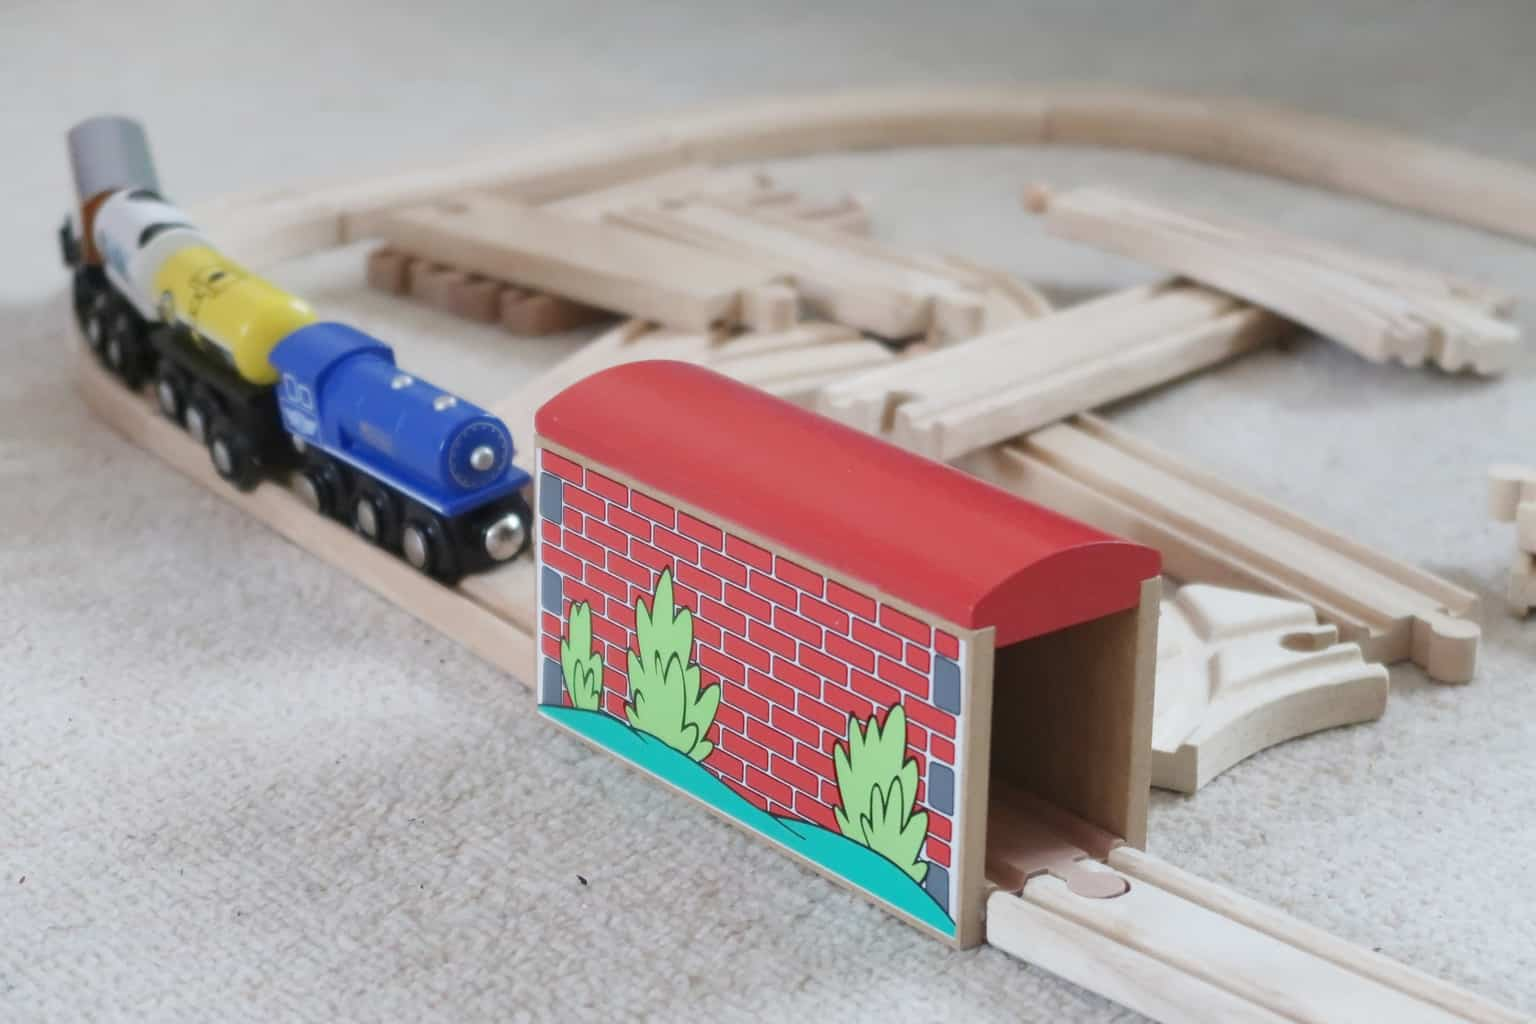 Building bright futures with wooden railways